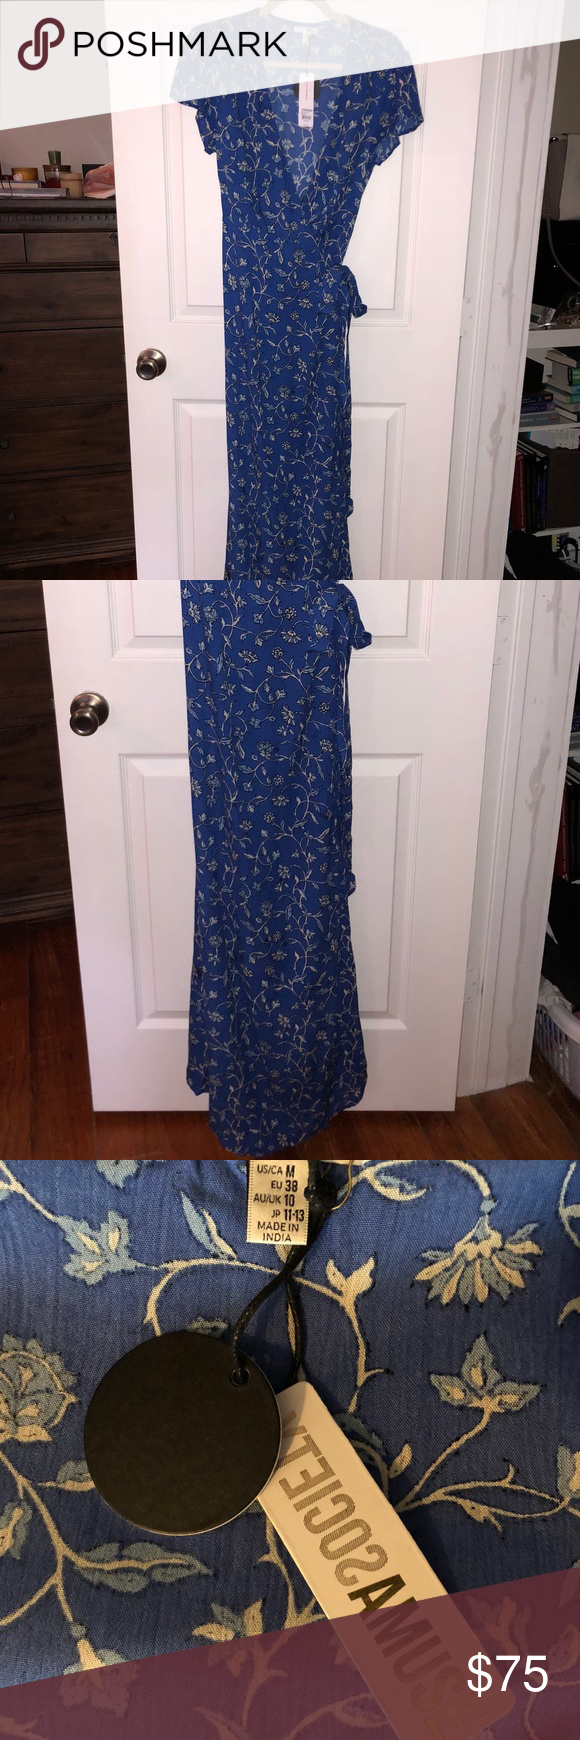 5275f3a613 AMUSE SOCIETY Summer Safari Maxi Dress size M New with tags never worn